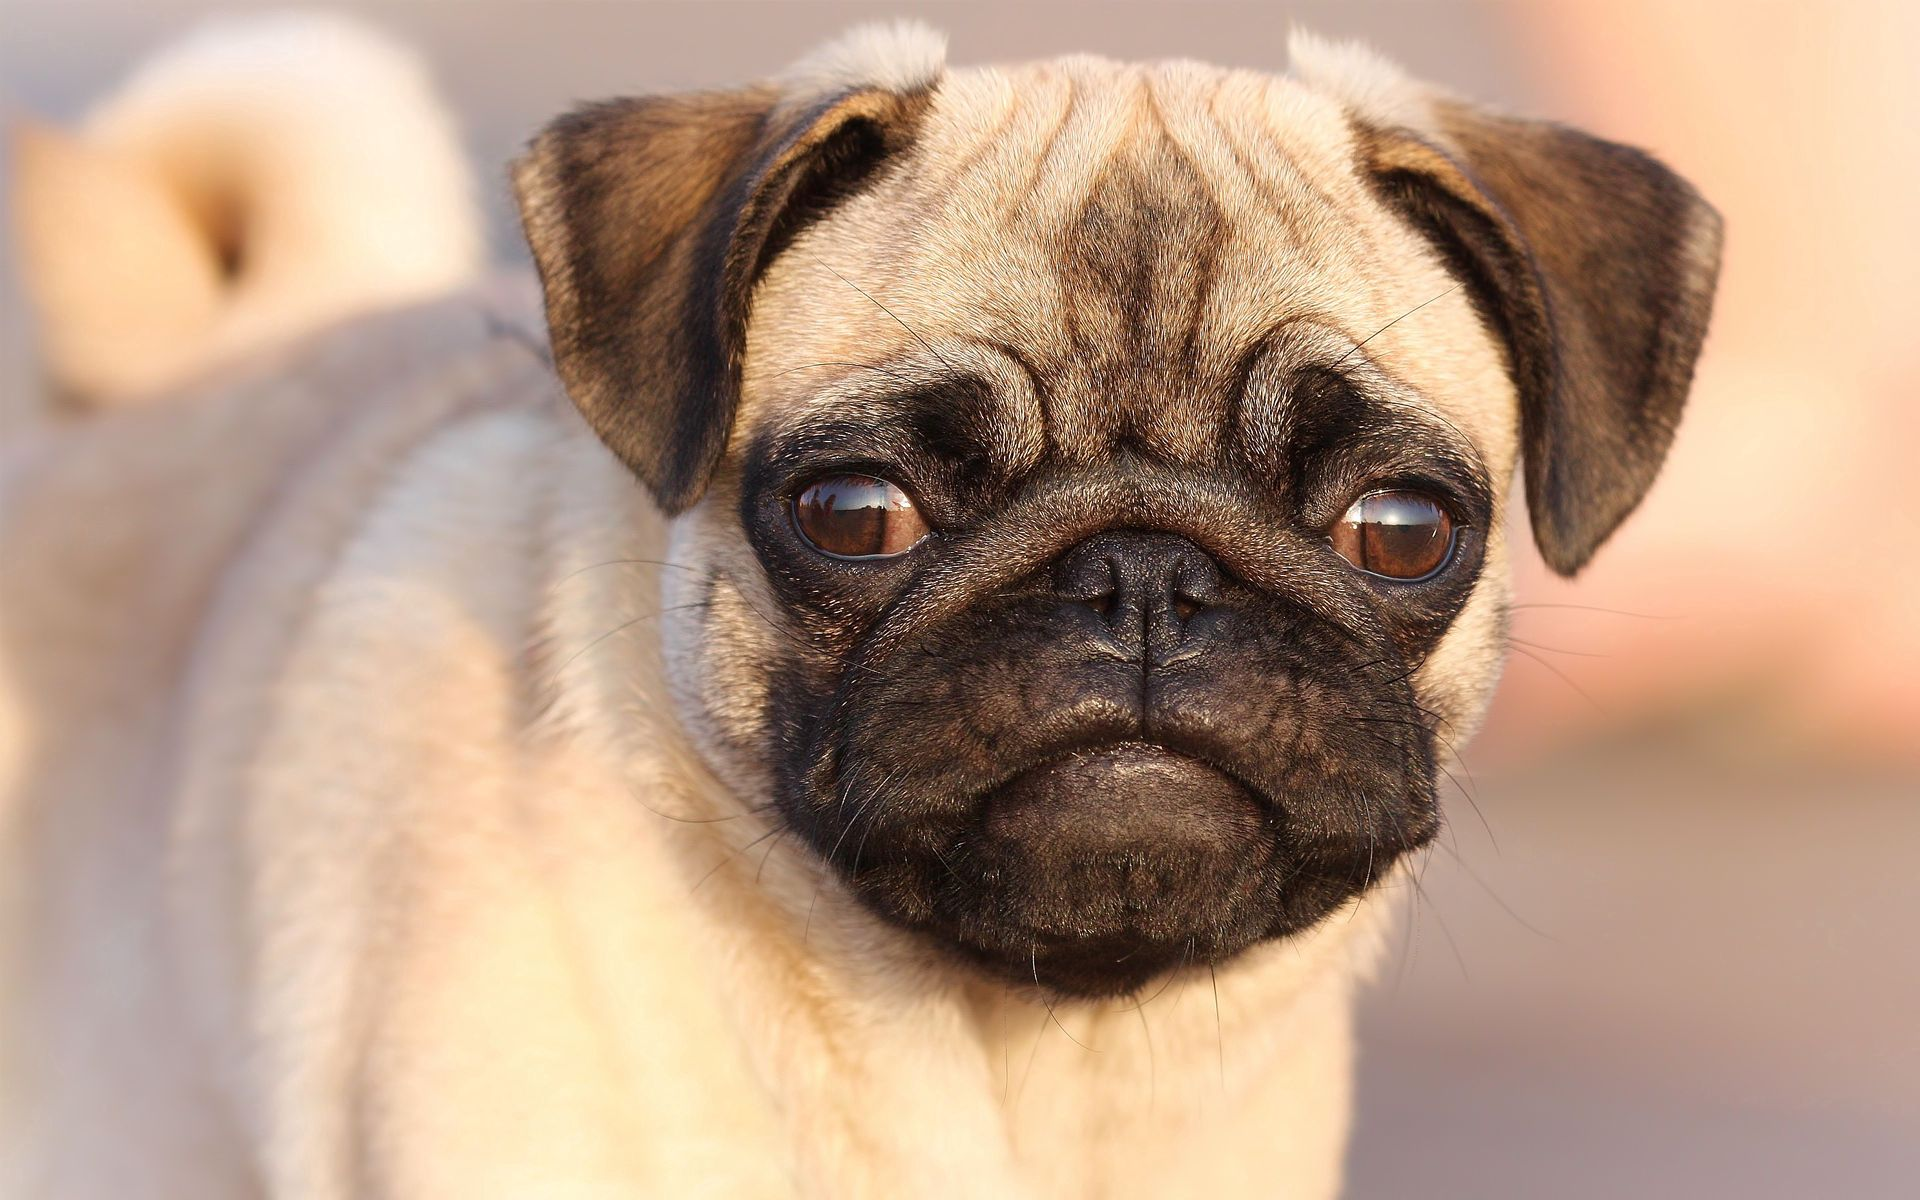 126178 download wallpaper Animals, Pug, Muzzle, Sight, Opinion, Puppy, Dog screensavers and pictures for free